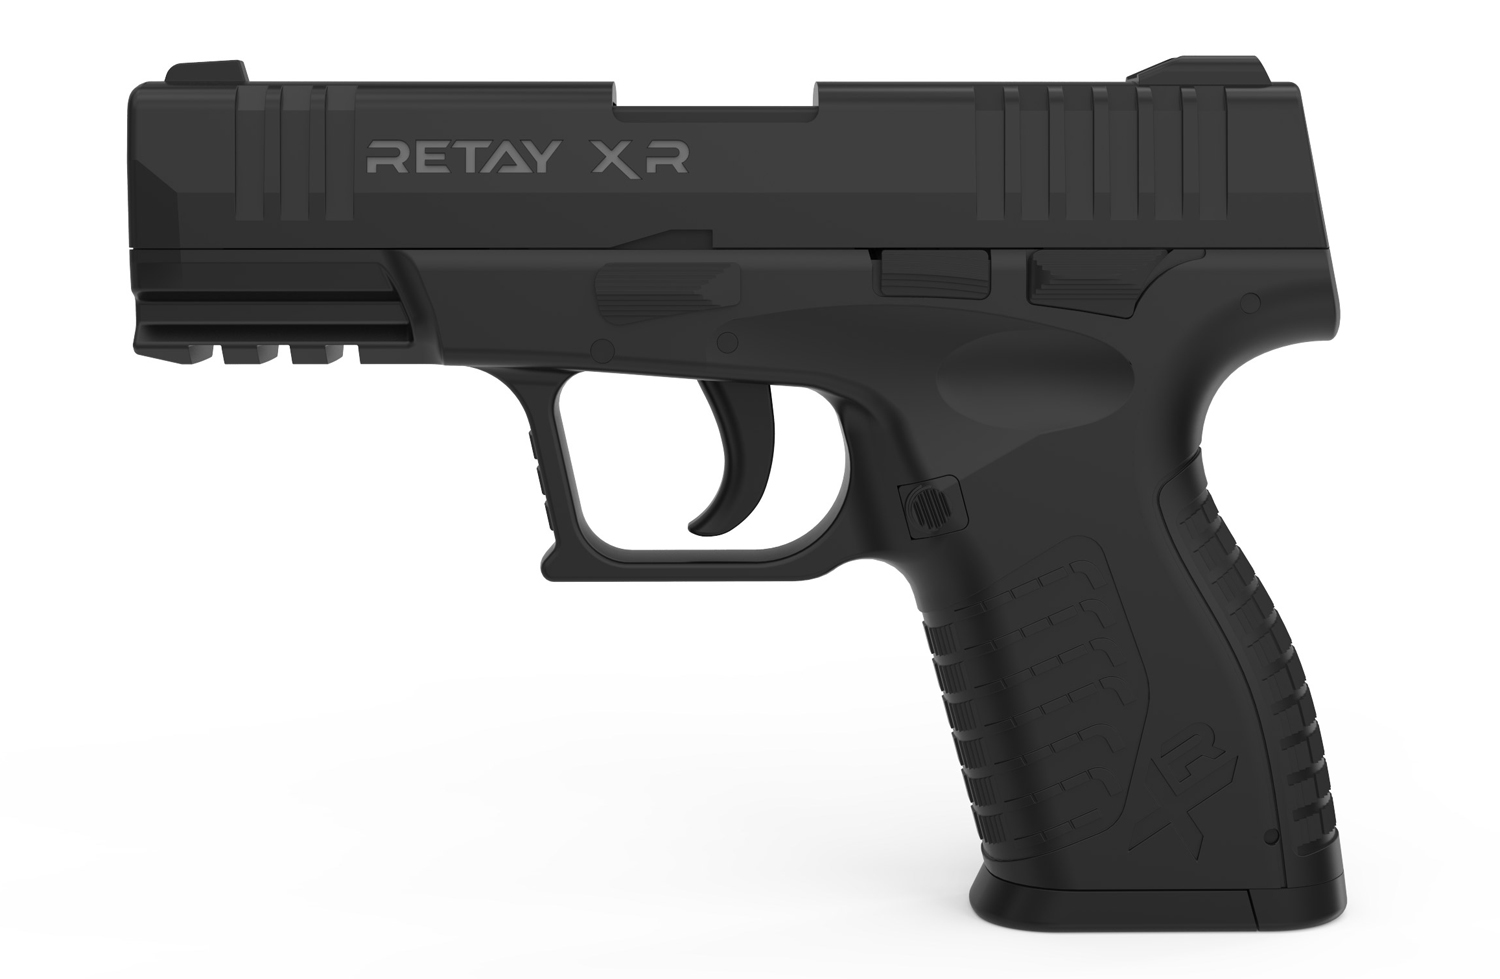 Retay XR Black | Article No: Y700290B 1150 1